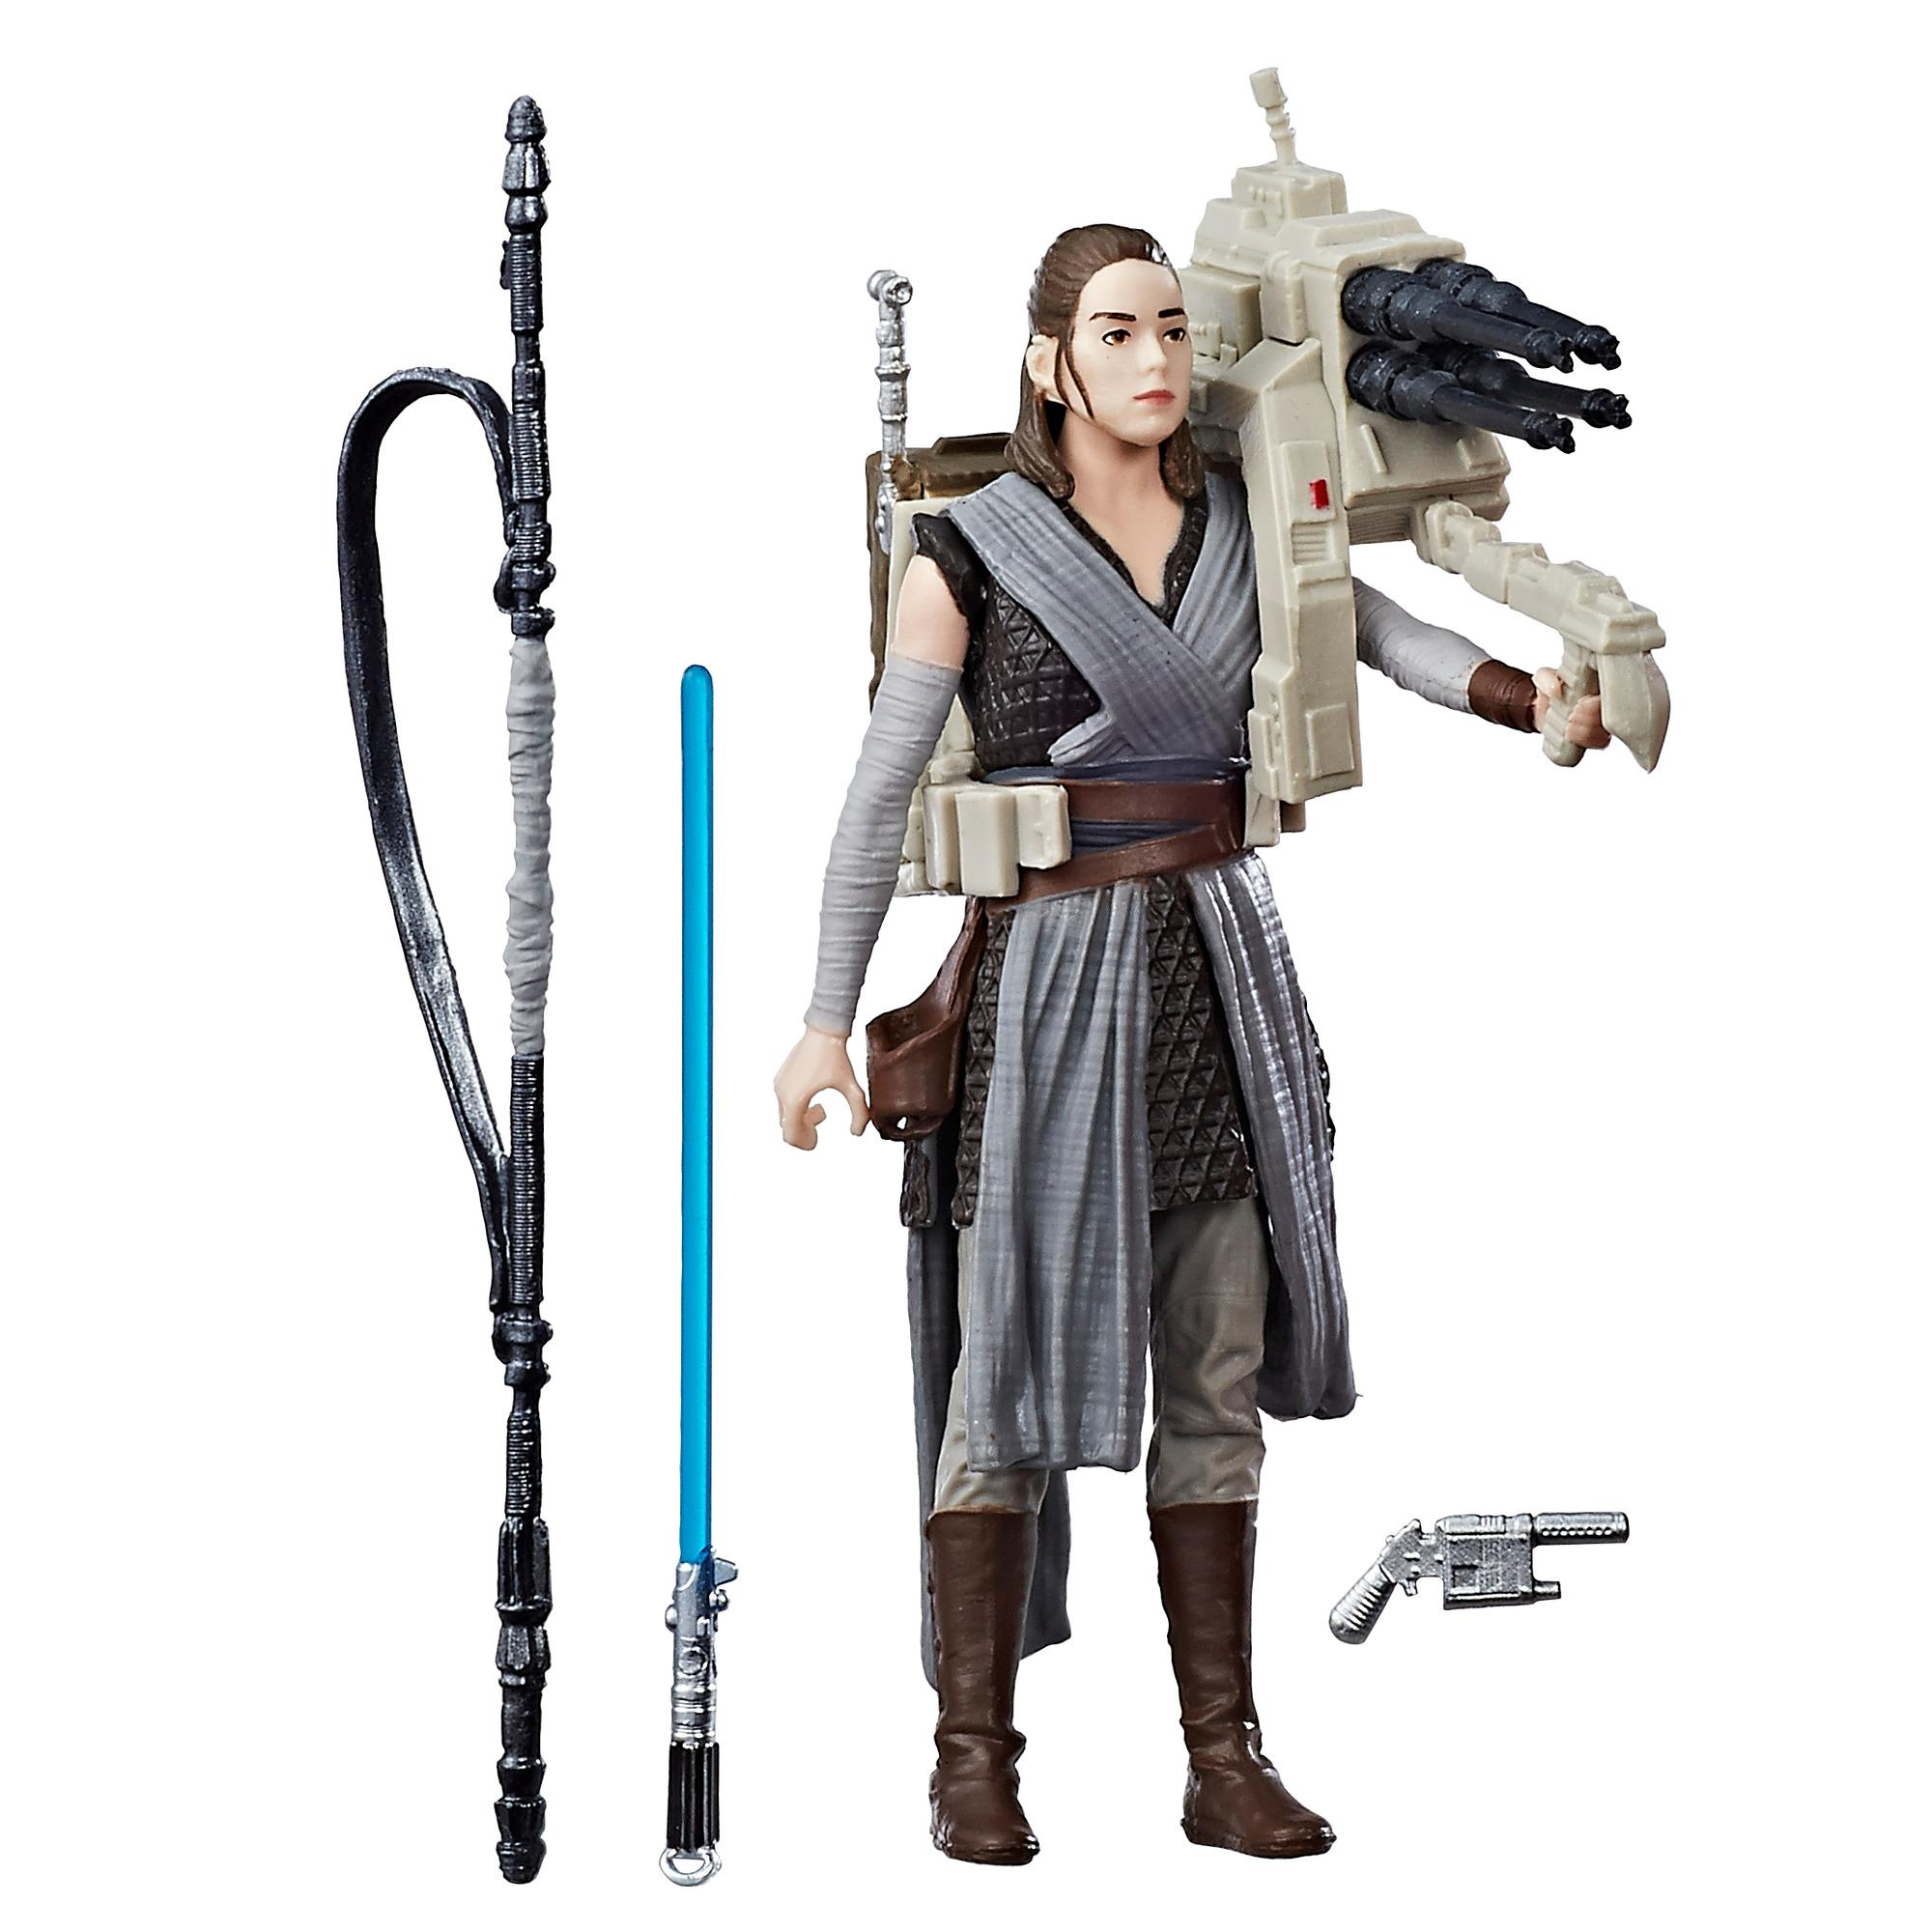 Kit Duplo Star Wars Rey (Treinamento Jedi) e guarda pretoriano de elite